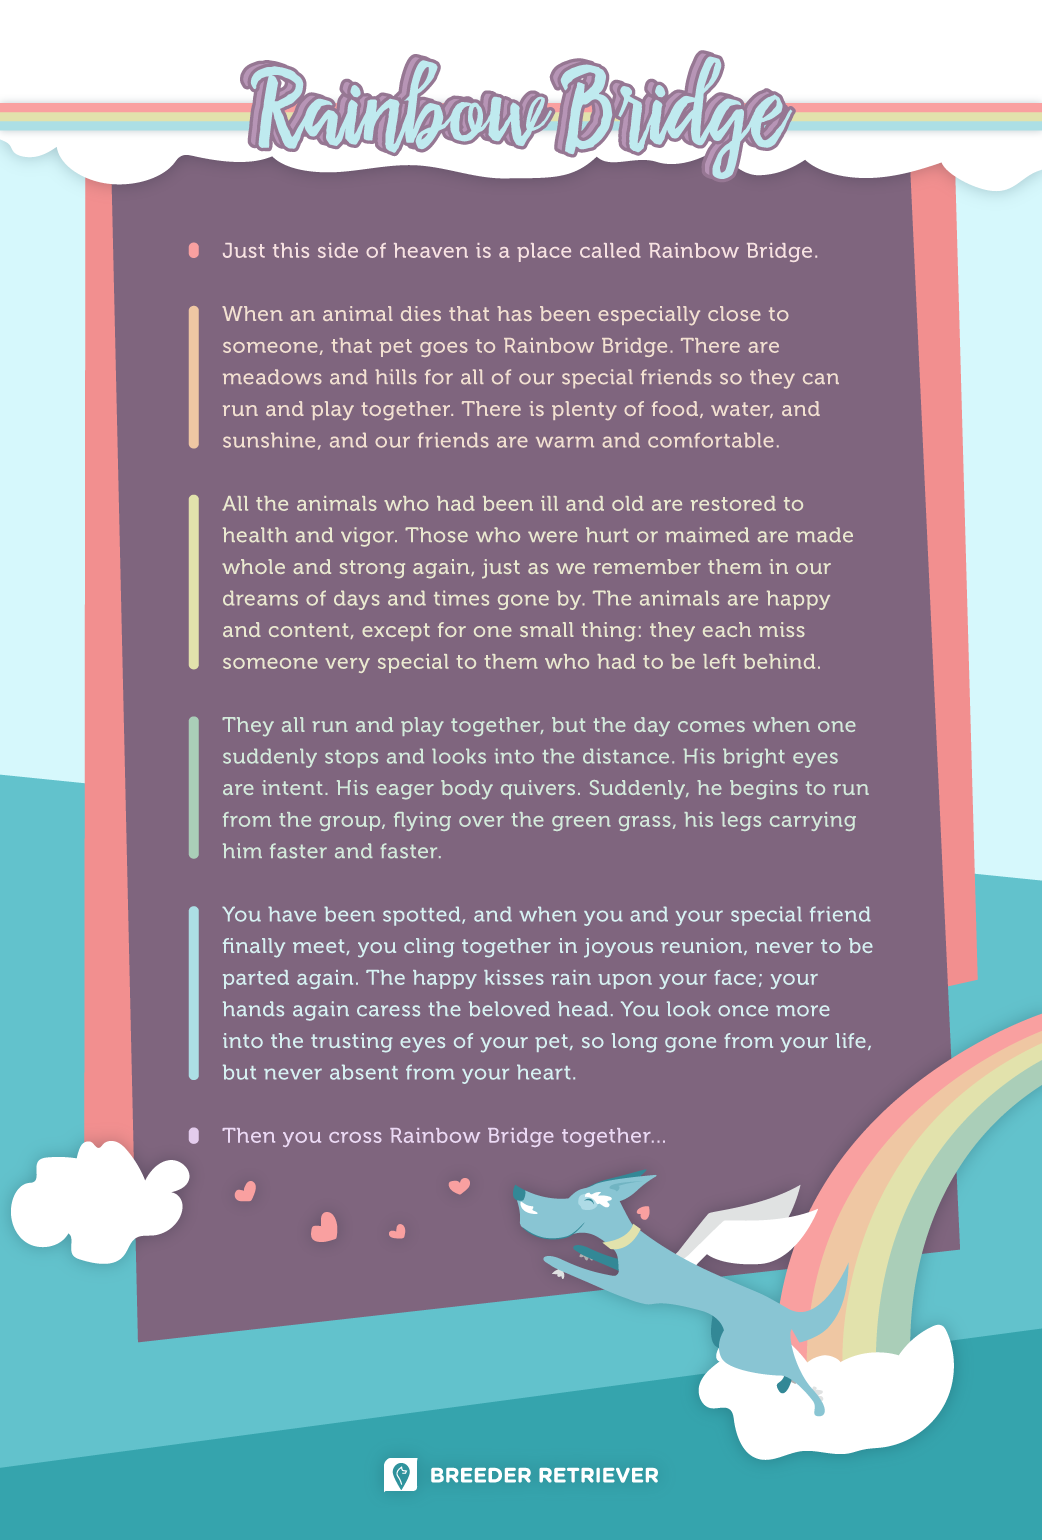 graphic relating to Rainbow Bridge Poem for Dogs Printable identify The Rainbow Bridge Poem For Canines - Puppy Heaven (Printable